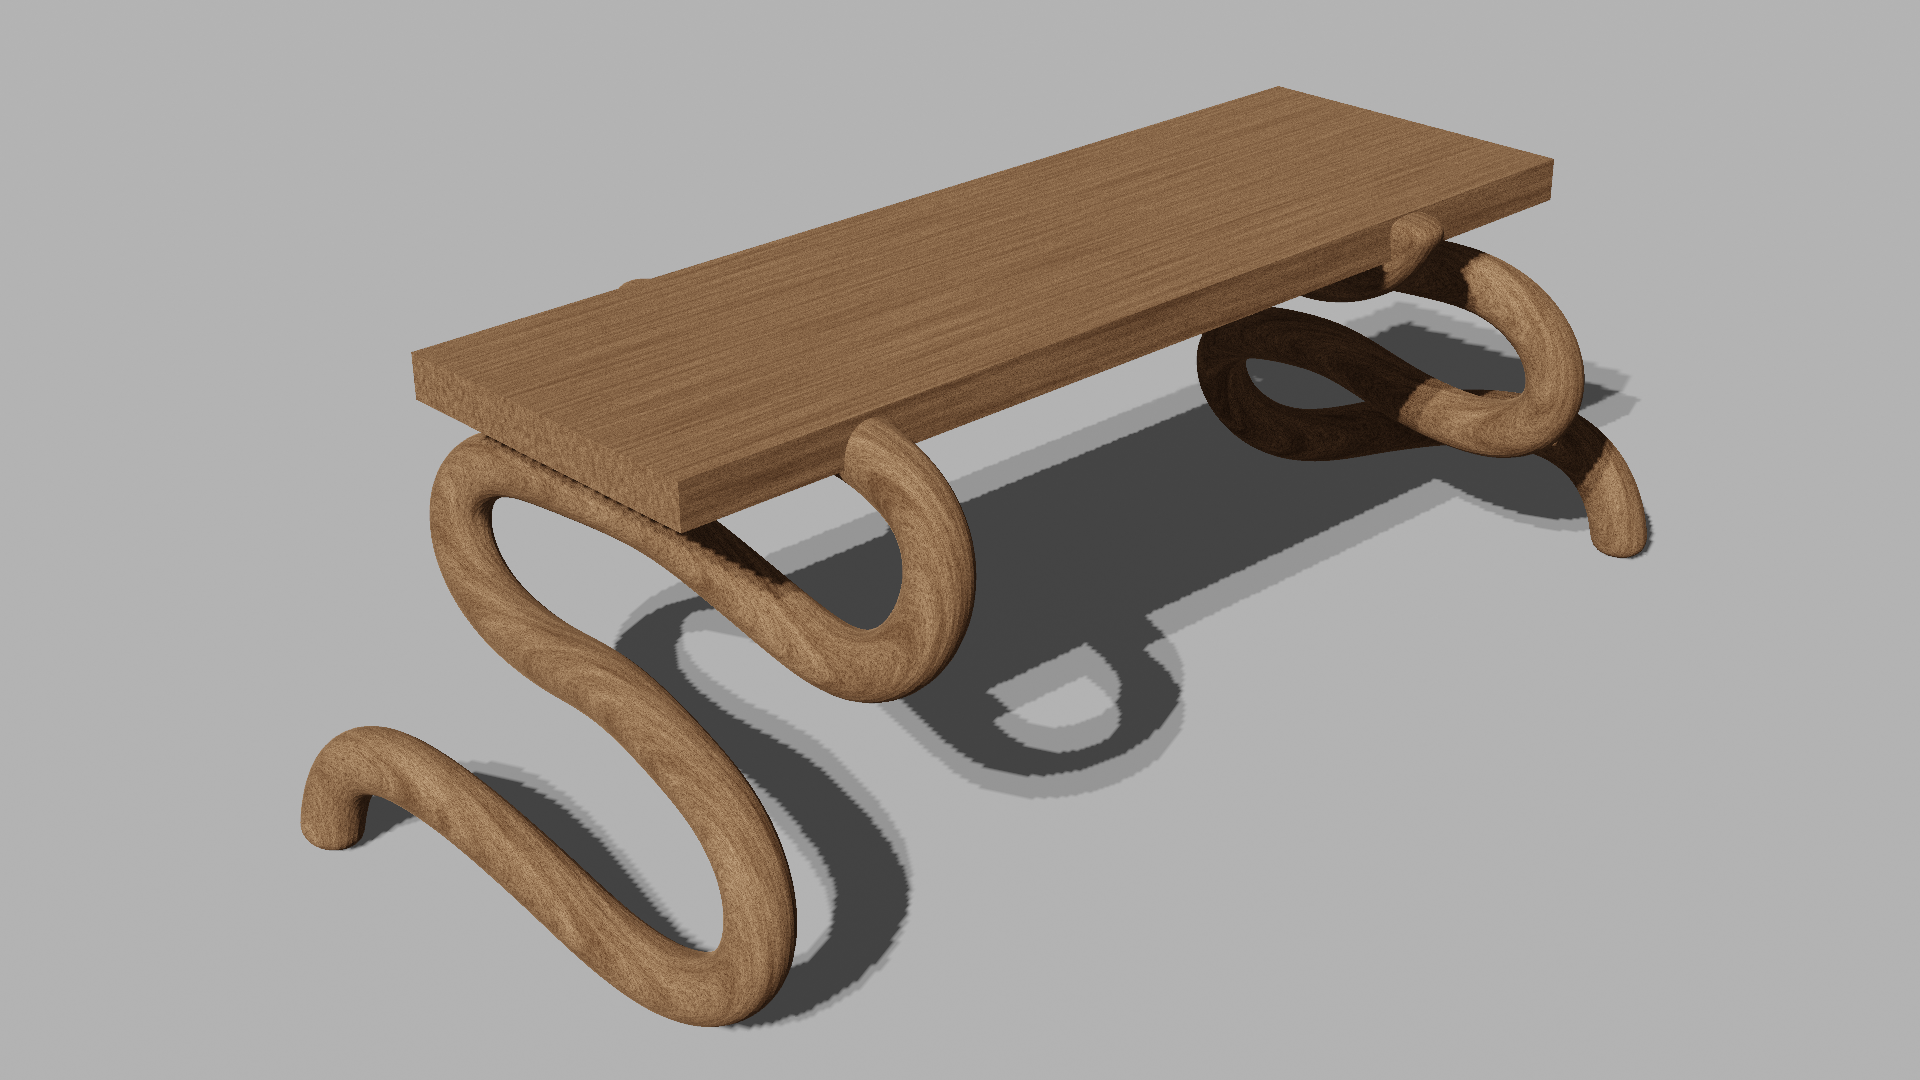 simple wood bench preview image 1